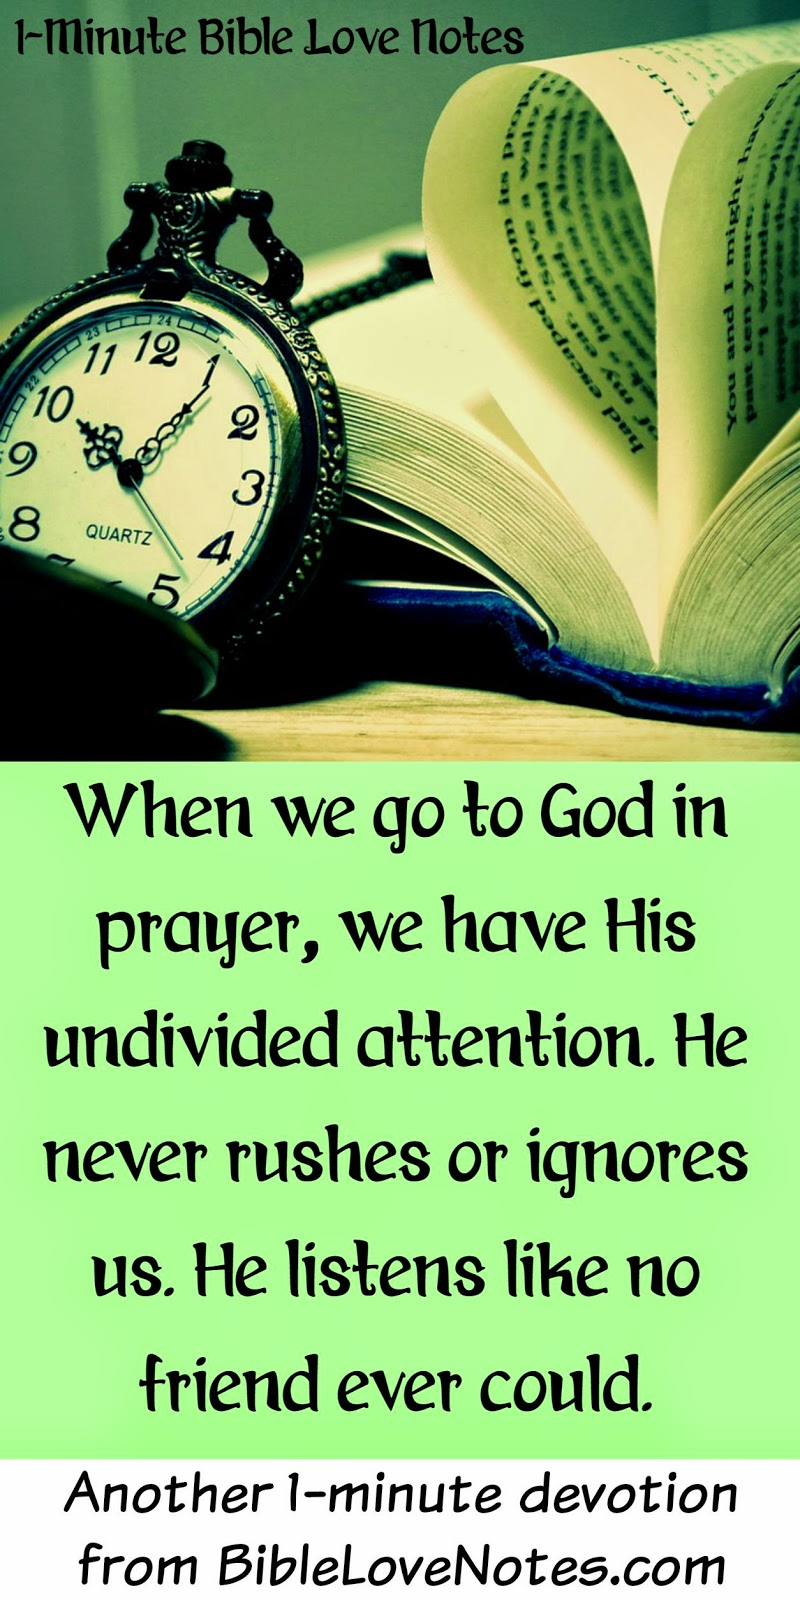 God always has time for us, God listens to every word, God is never in a hurry